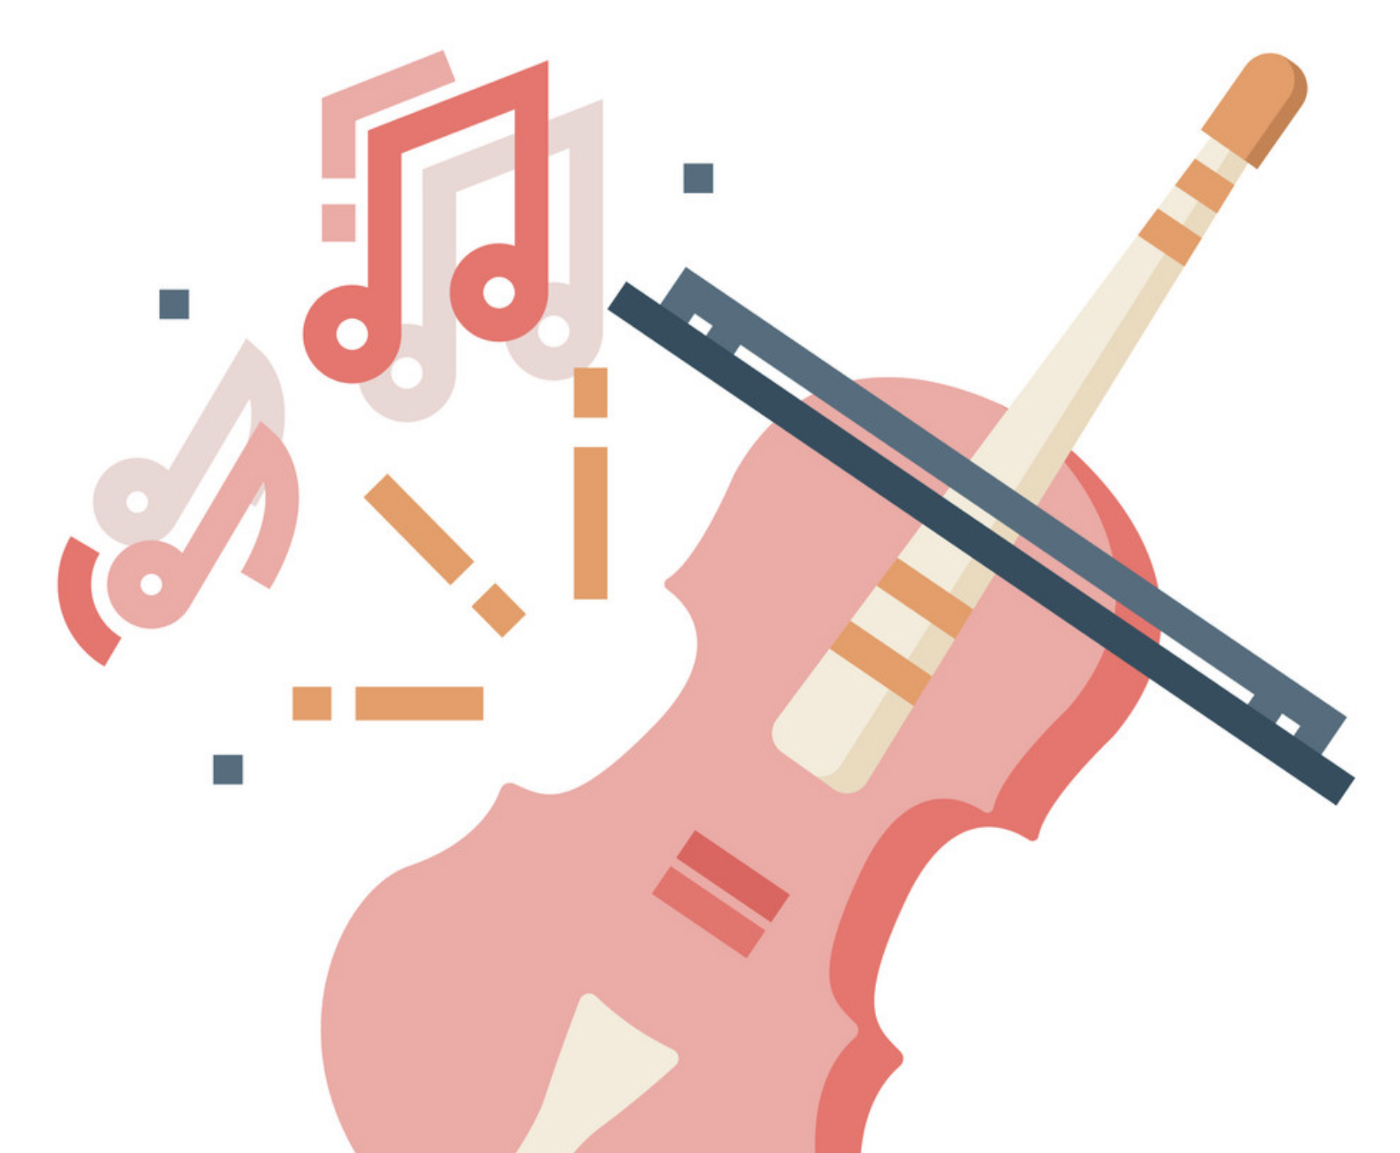 Music symbol and guitar to signify music.